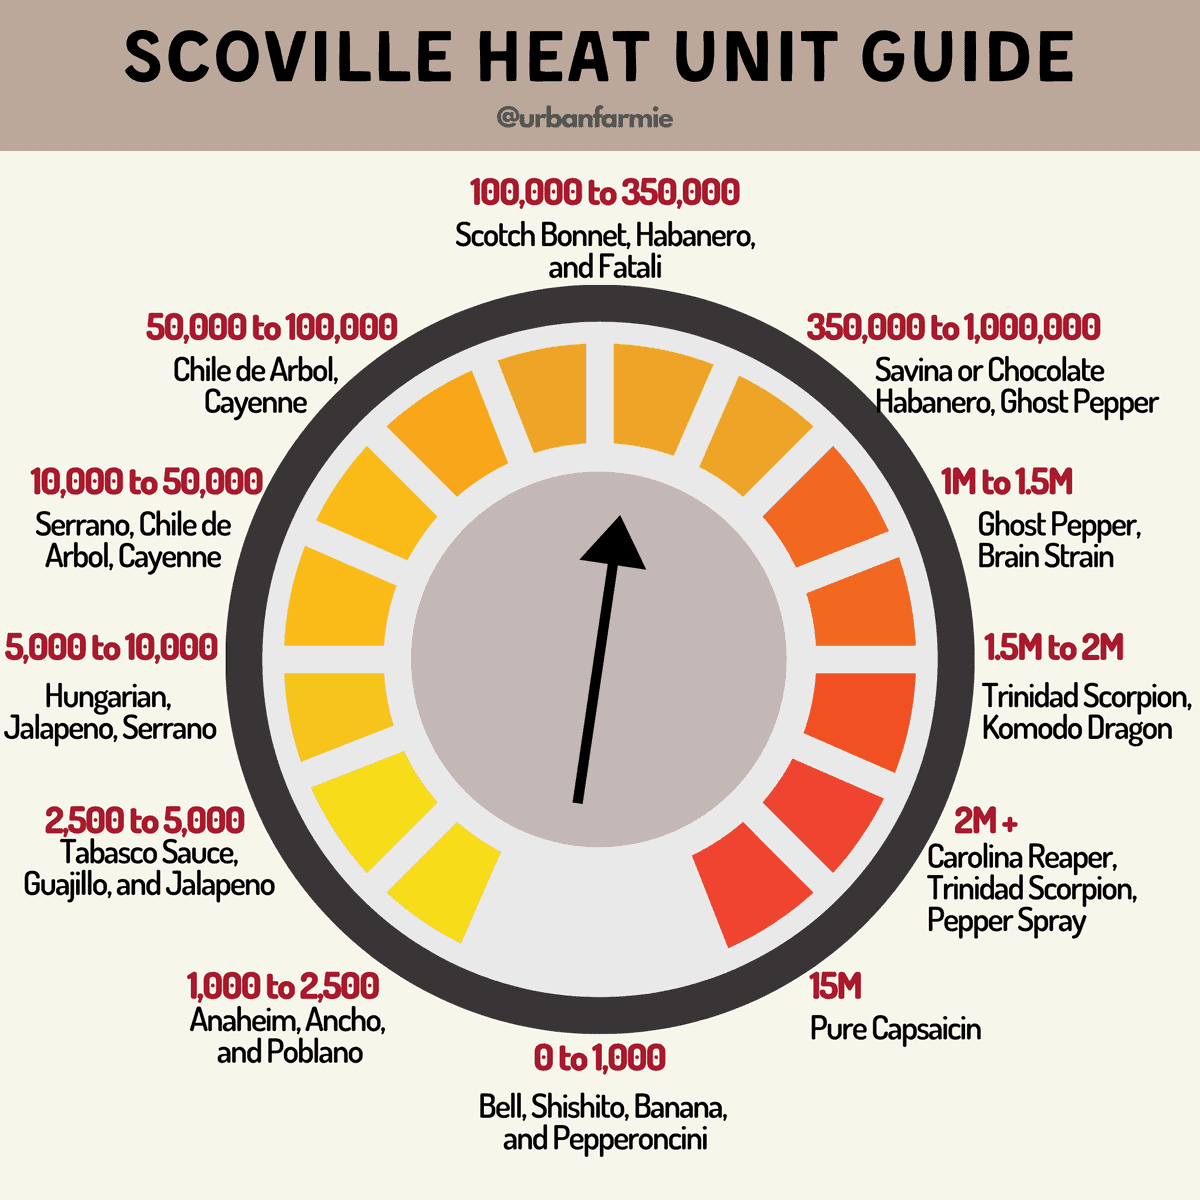 Infographic showing the Scoville Heat Scale and how different peppers rank against it.